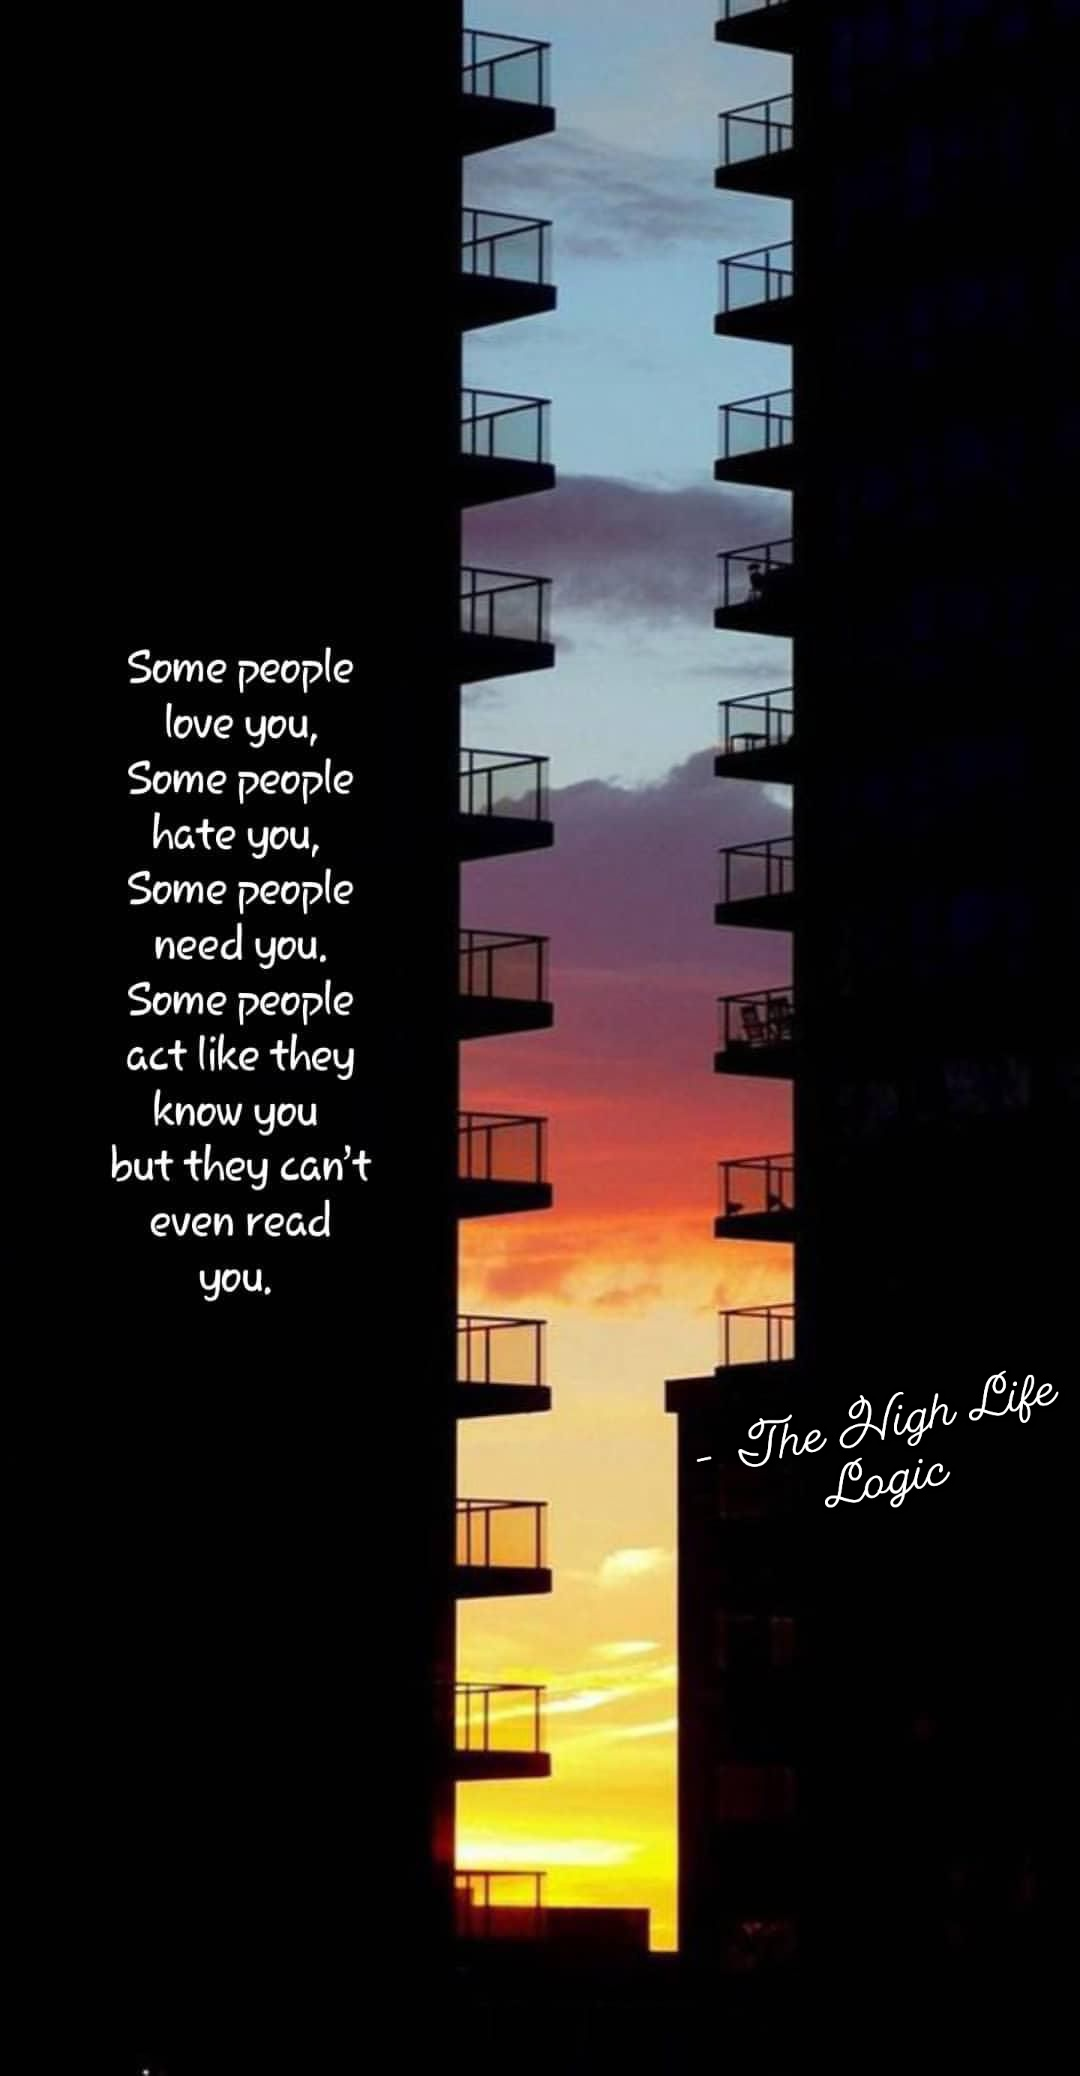 """Some people love you, some people hate you…"" – Logic on The High Life [1080×2076]"